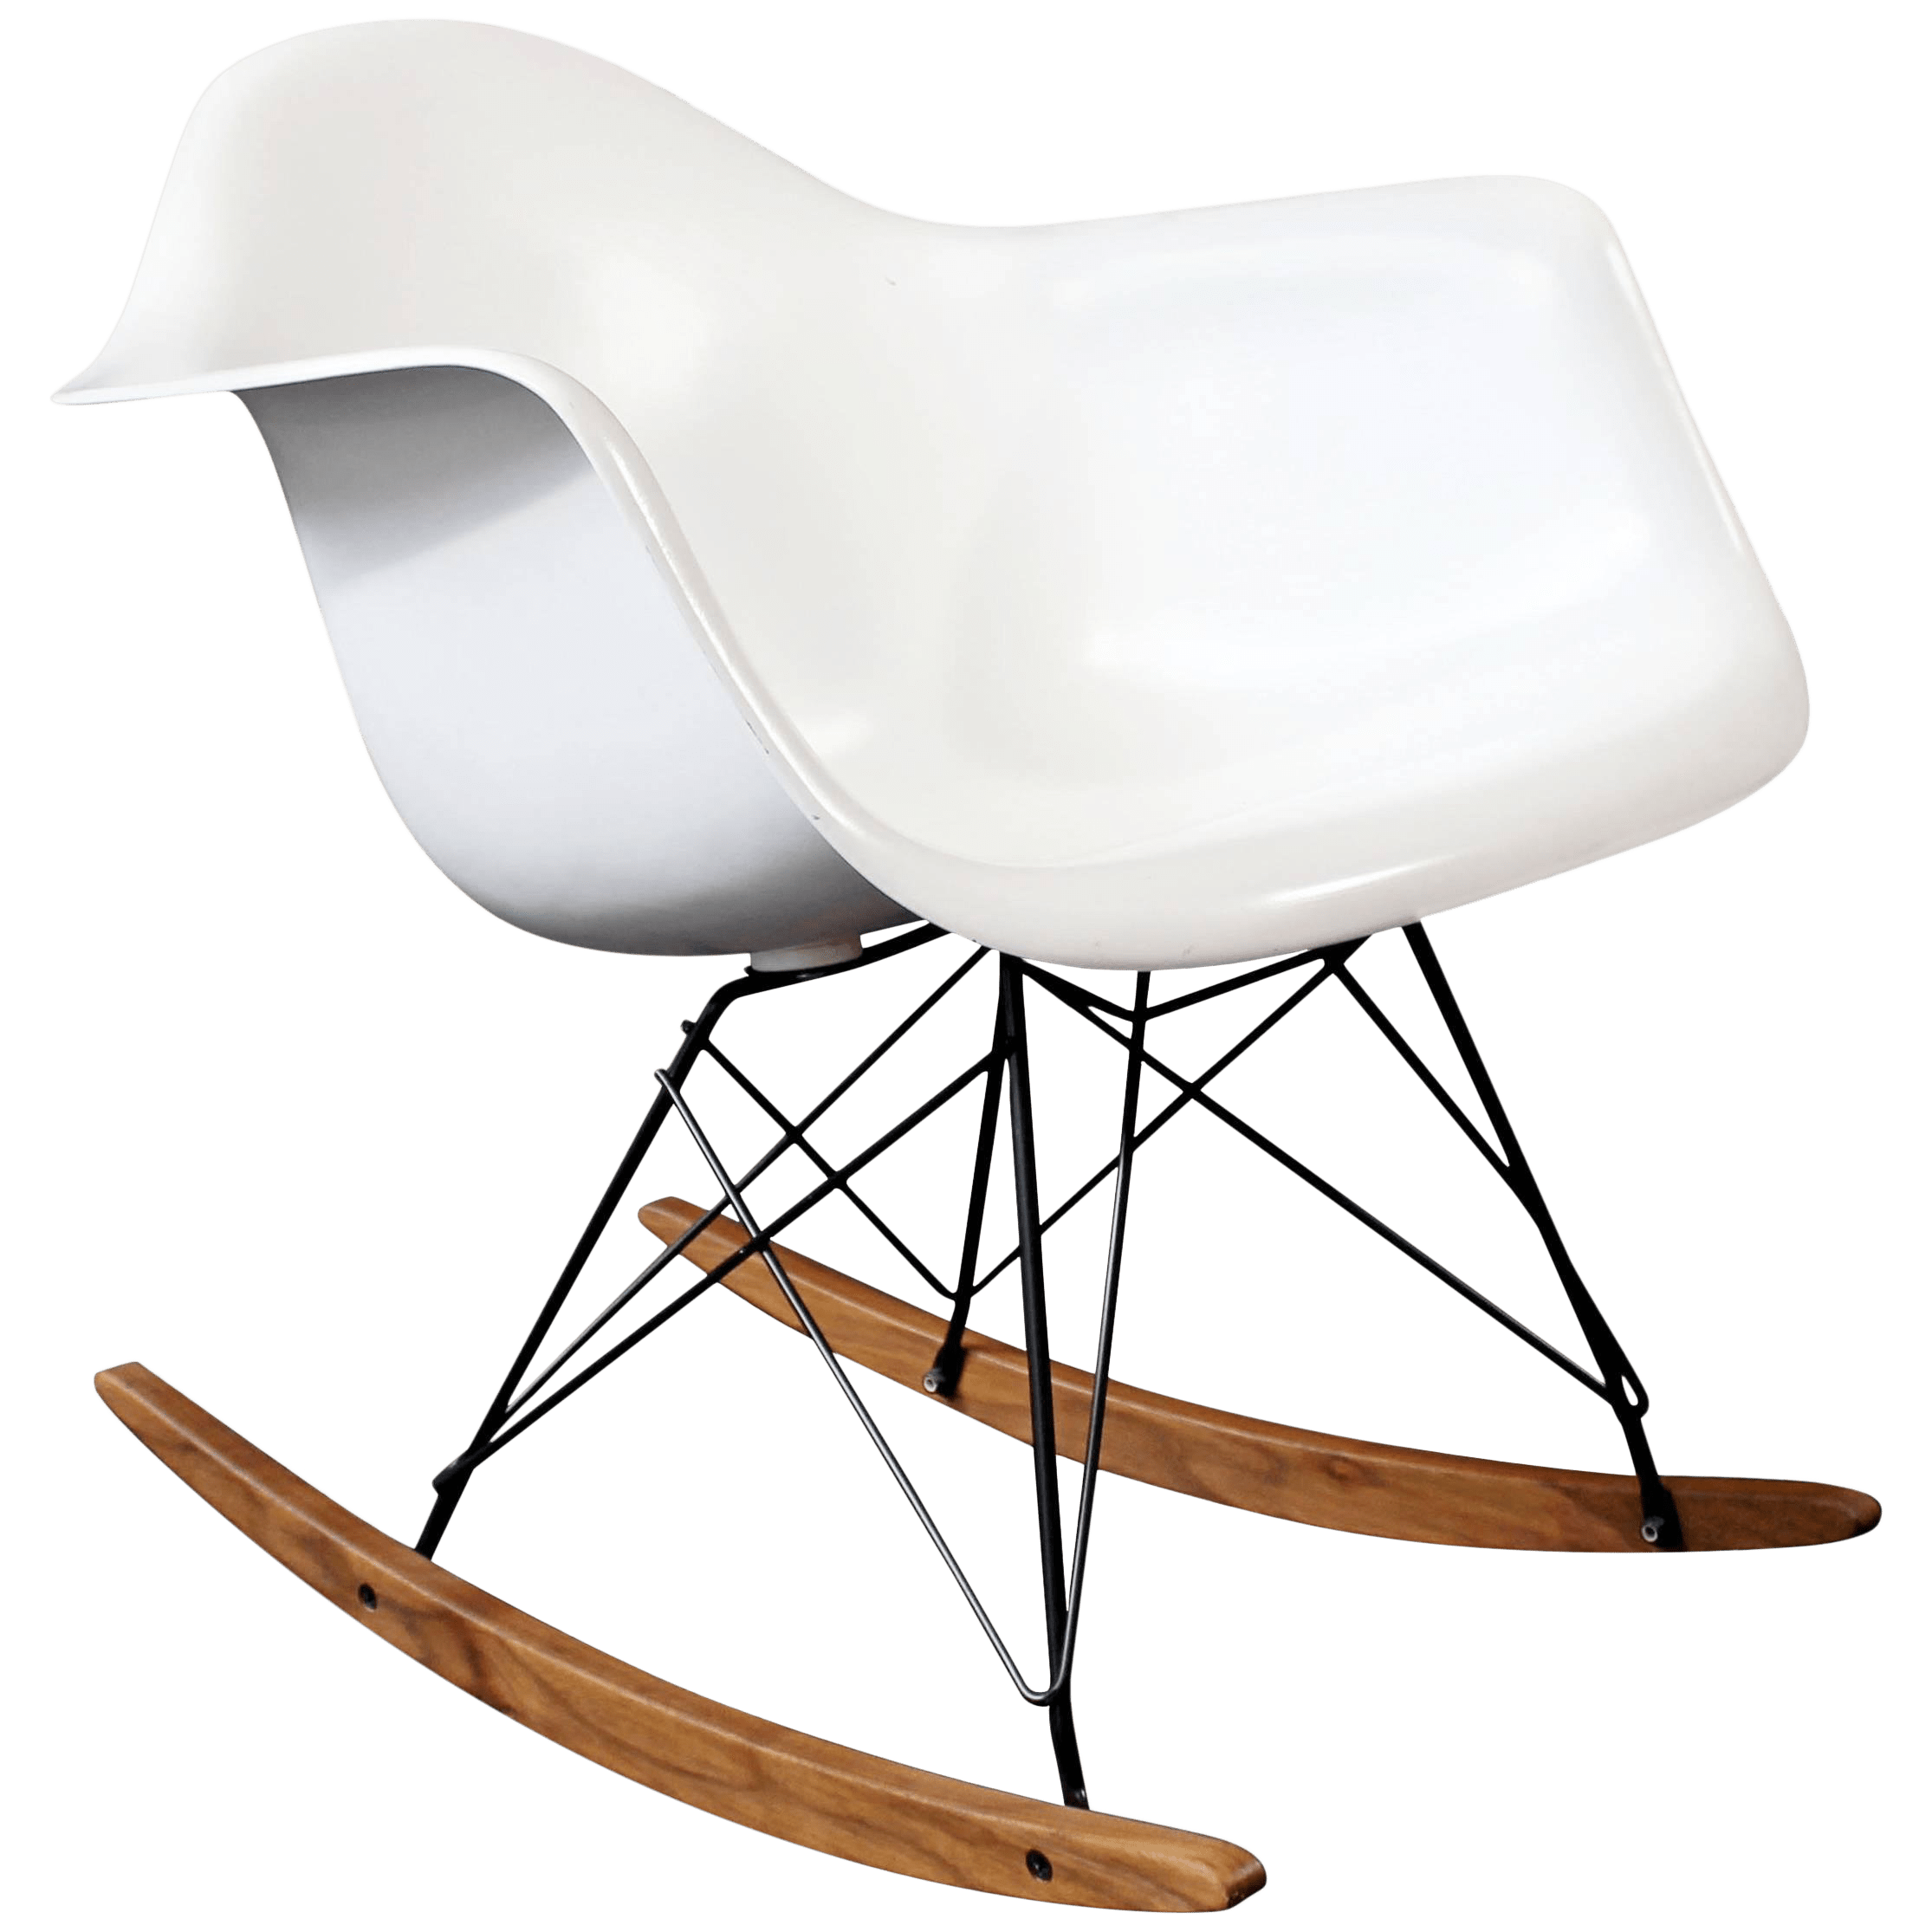 Vintage Eames Chair Mid Century Modern Vintage Eames Herman Miller Shell Rocker Rocking Chair 1970s